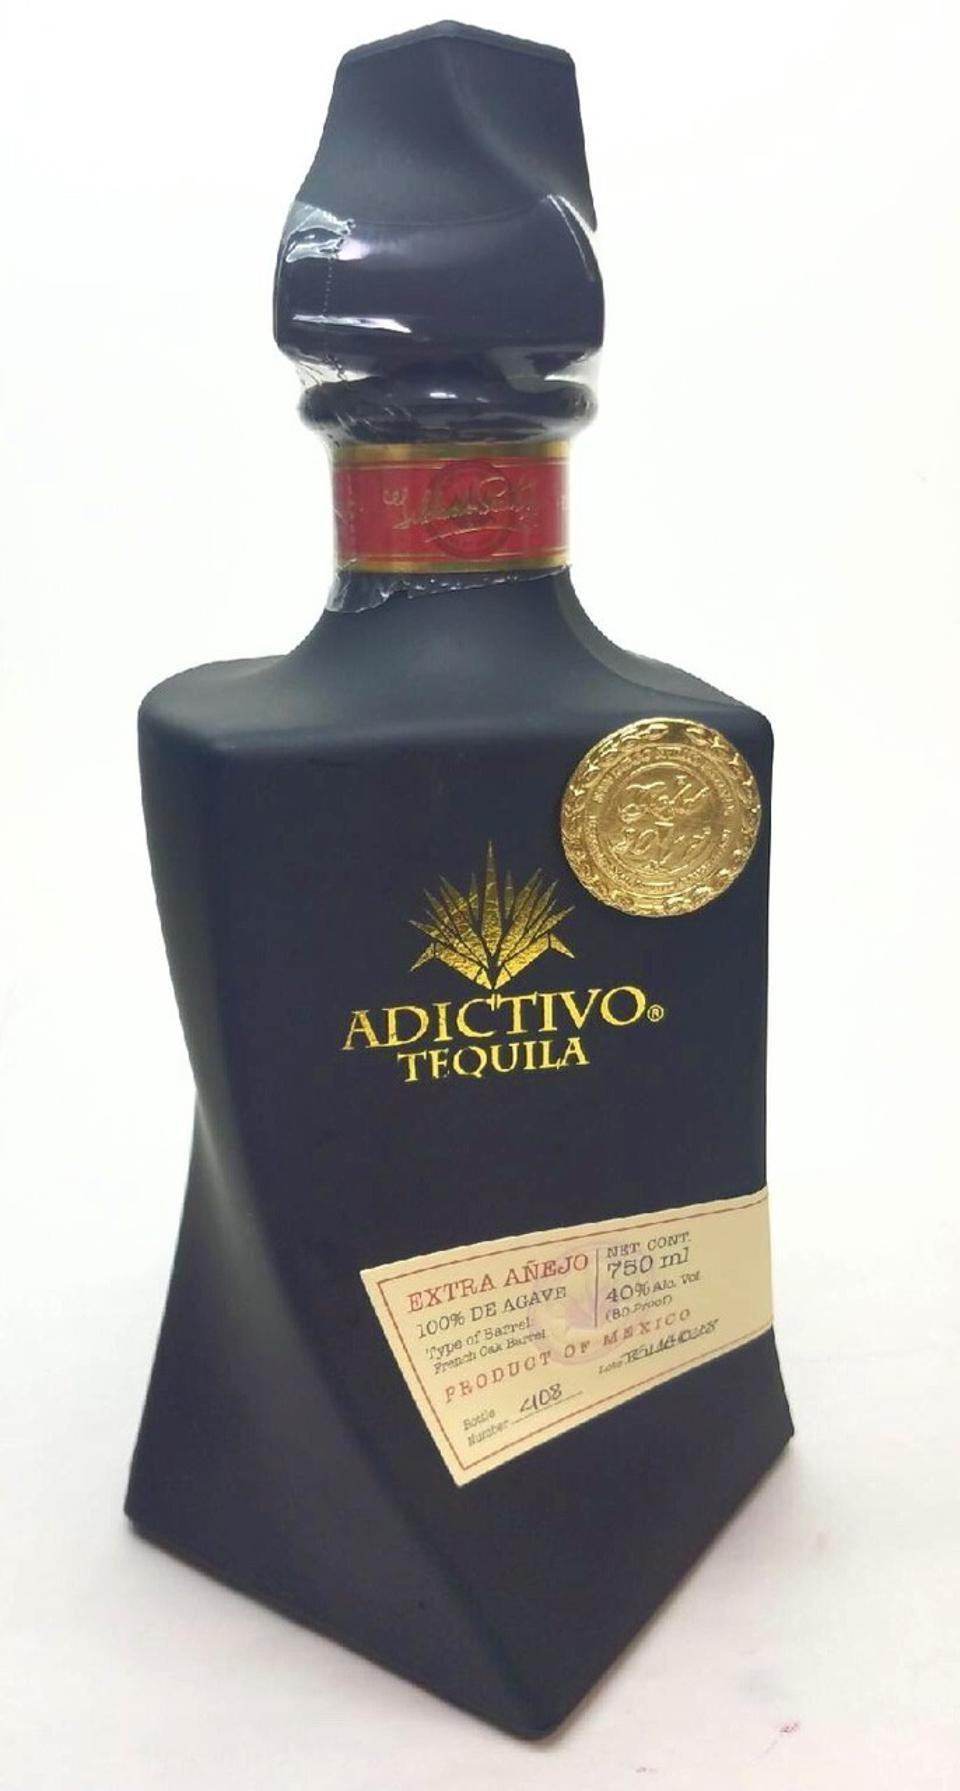 Adictivo tequila's limited edition Extra Añejo